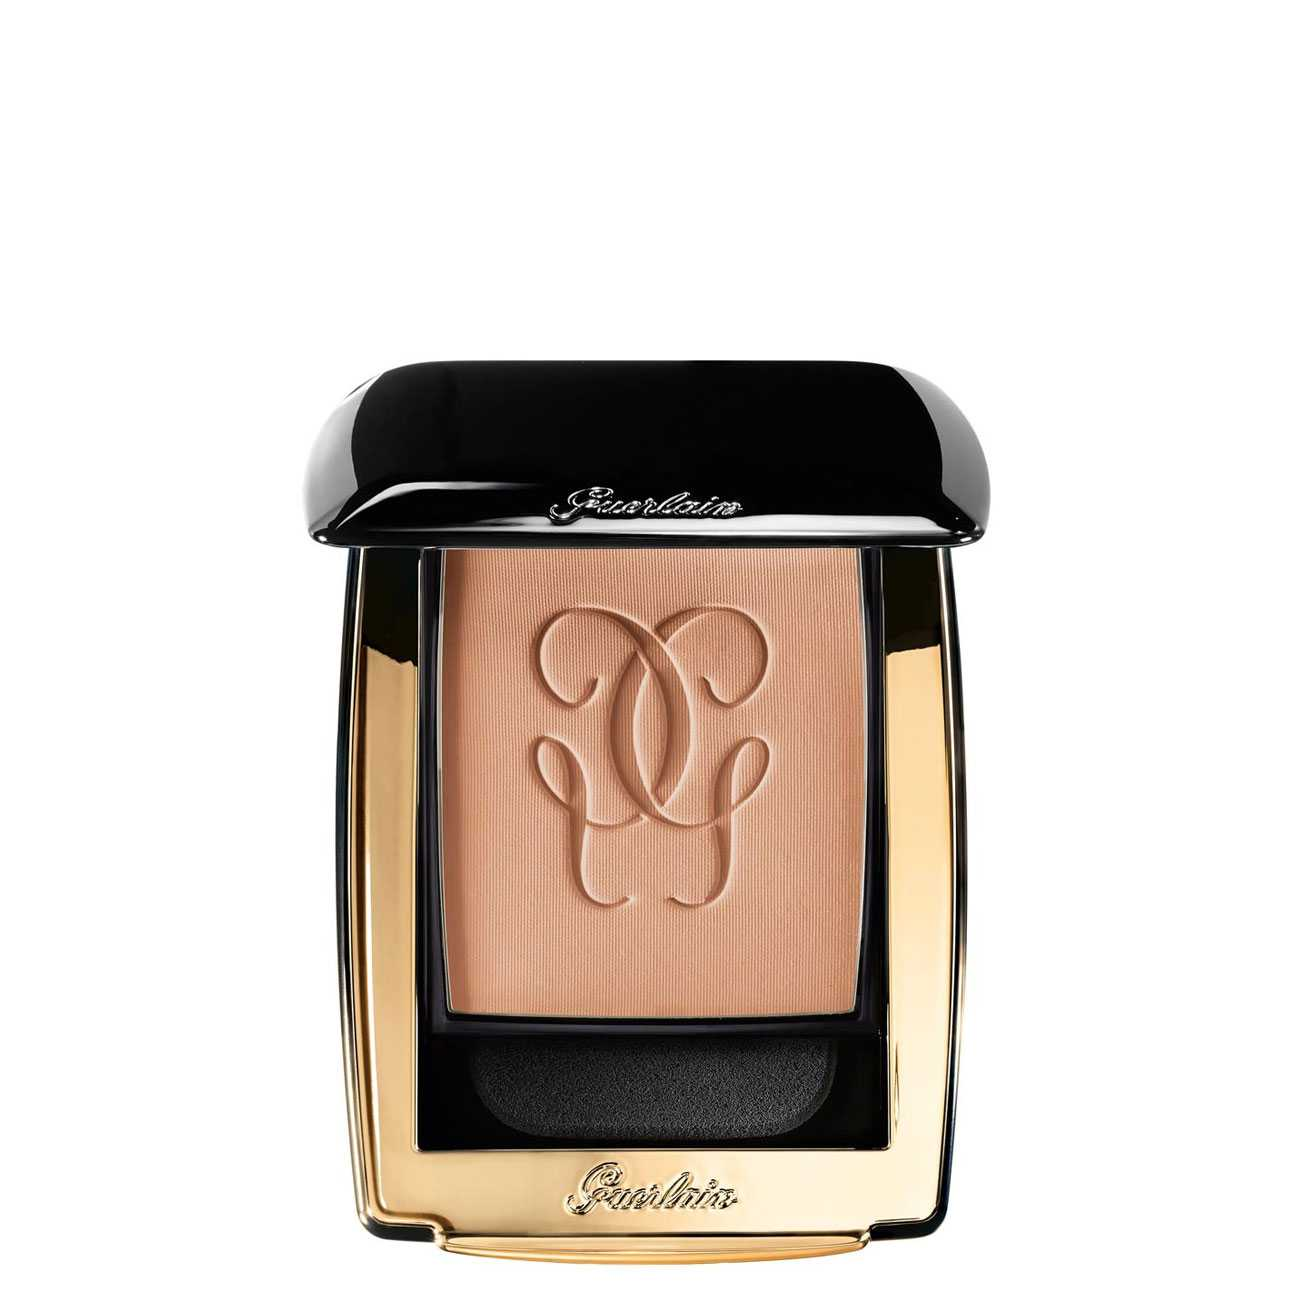 PARURE GOLD COMPACT FOUNDATION 10 G Rose Clair 12